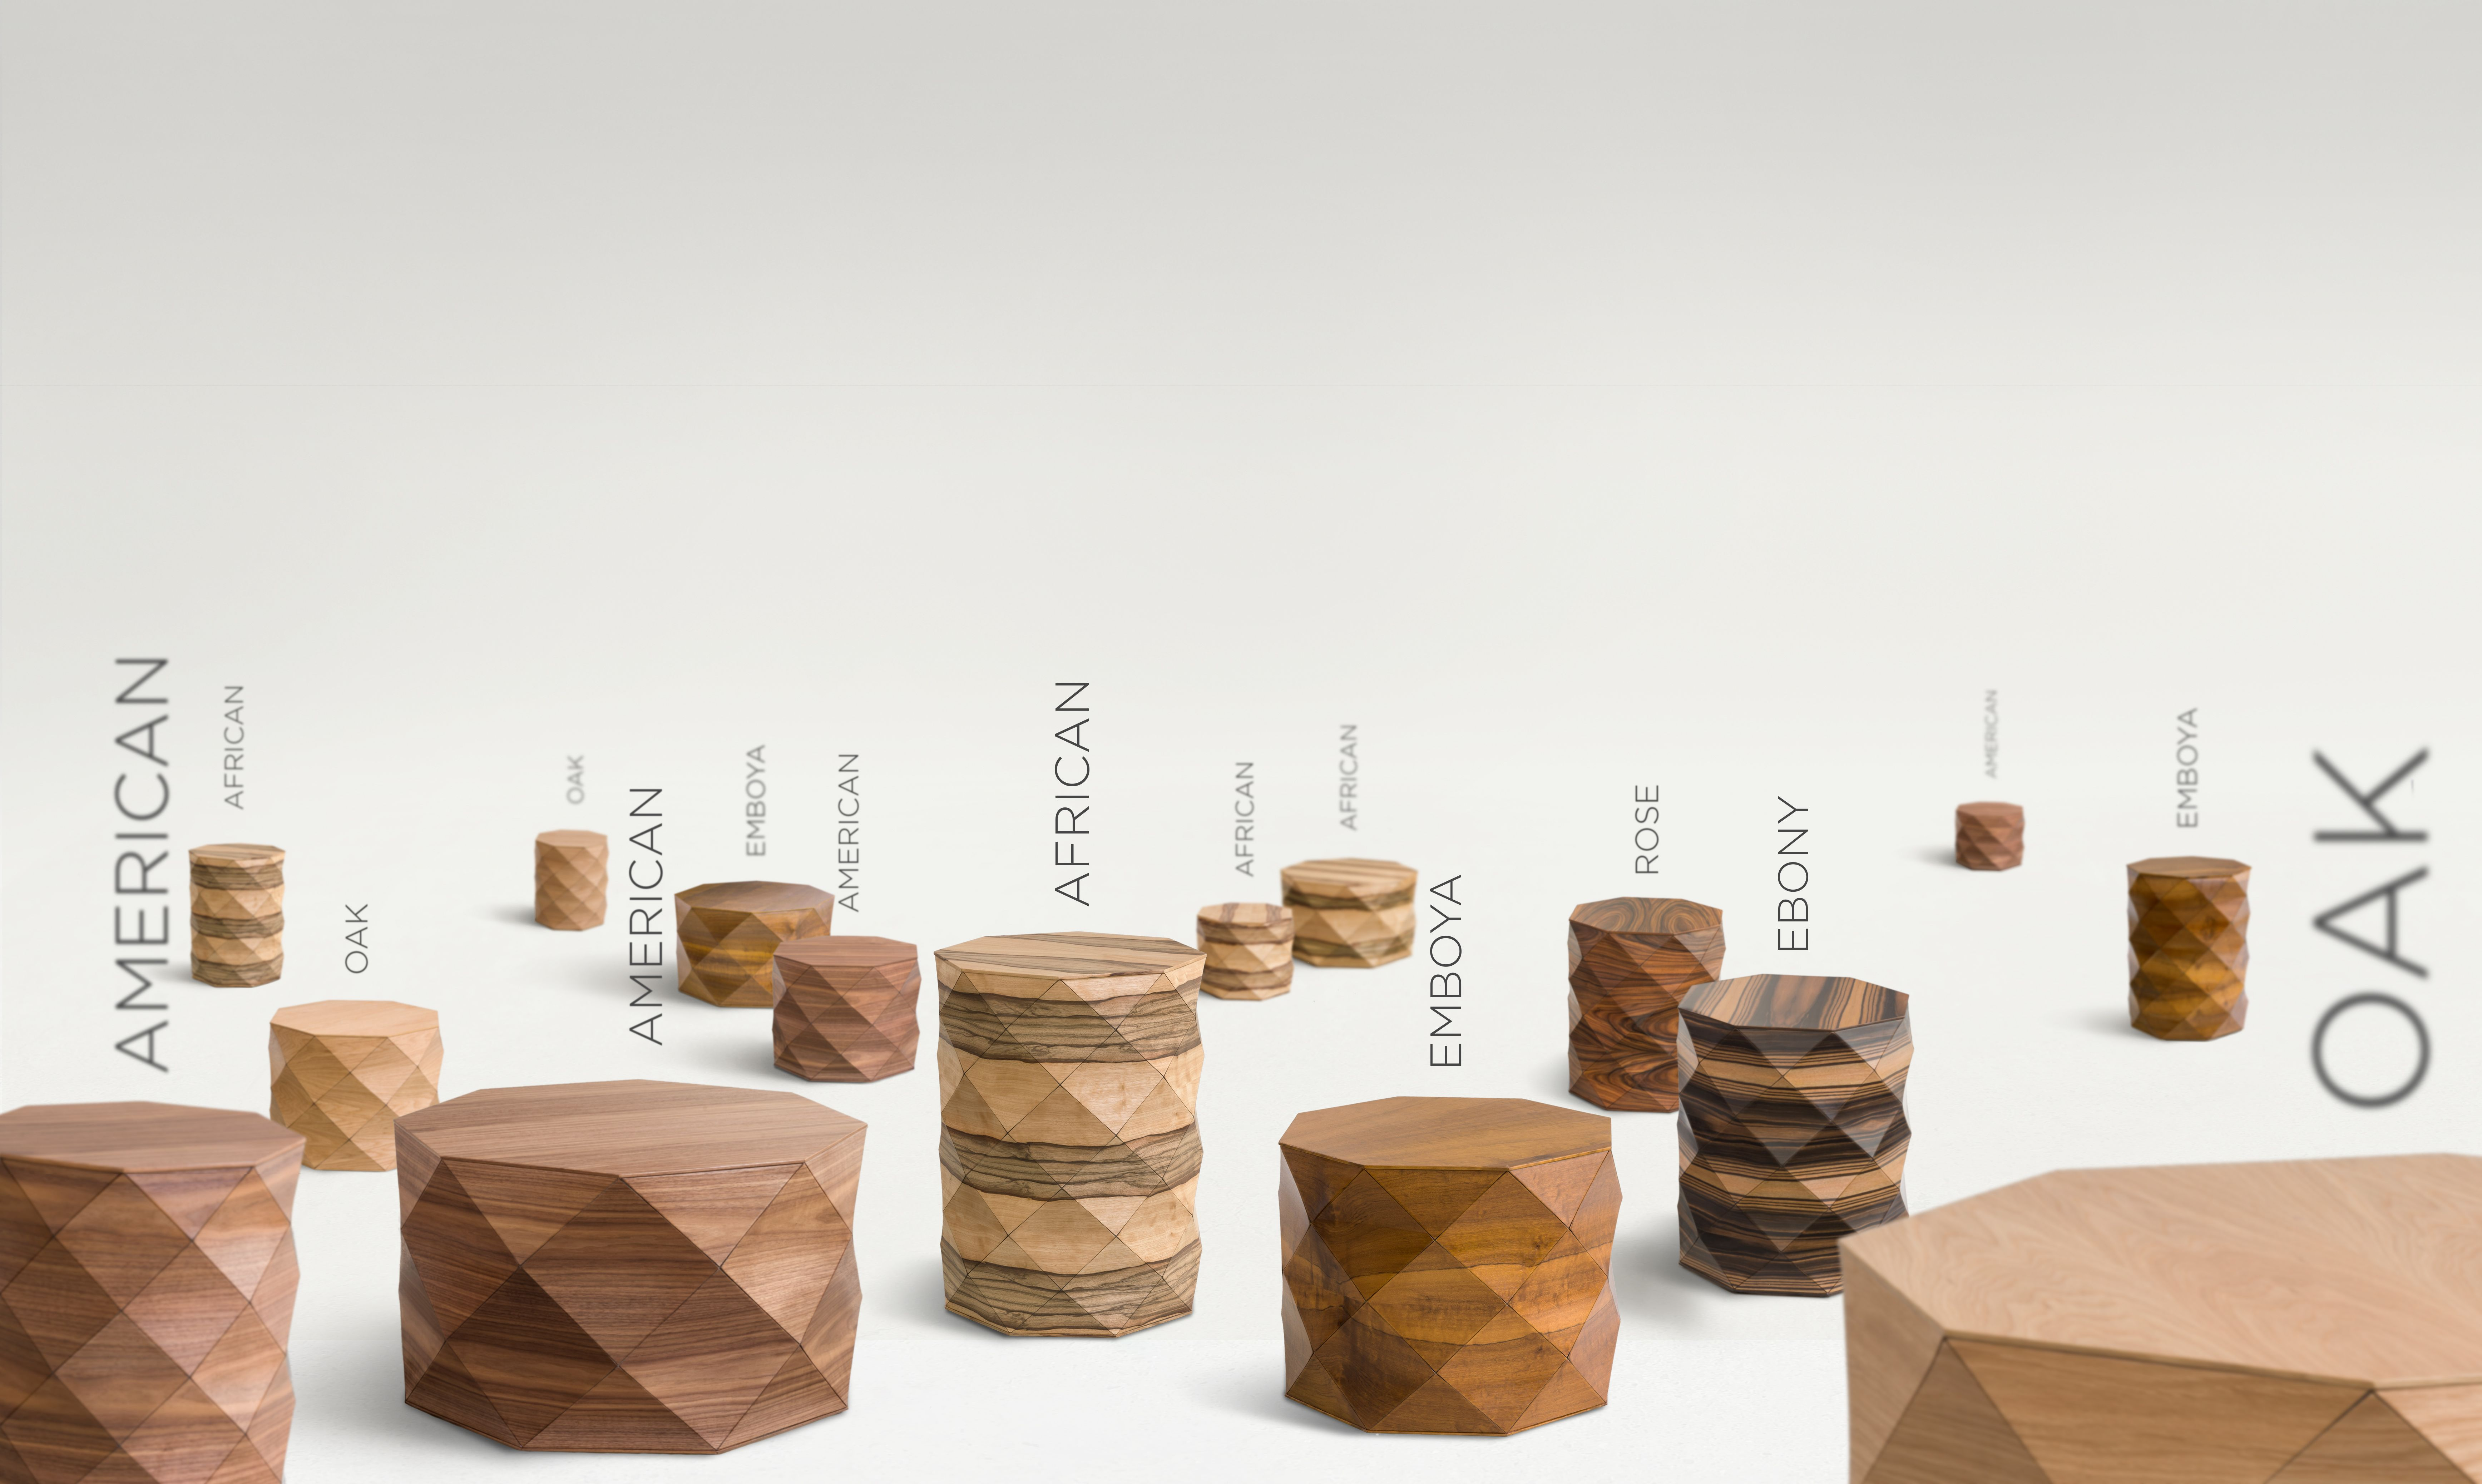 Coffee Tables Ottomans And Stools Faceted Wood Handmade Tesler Mendelovitch Handmade Wood Coffee Table Wood Place Card Holders [ 4152 x 6944 Pixel ]